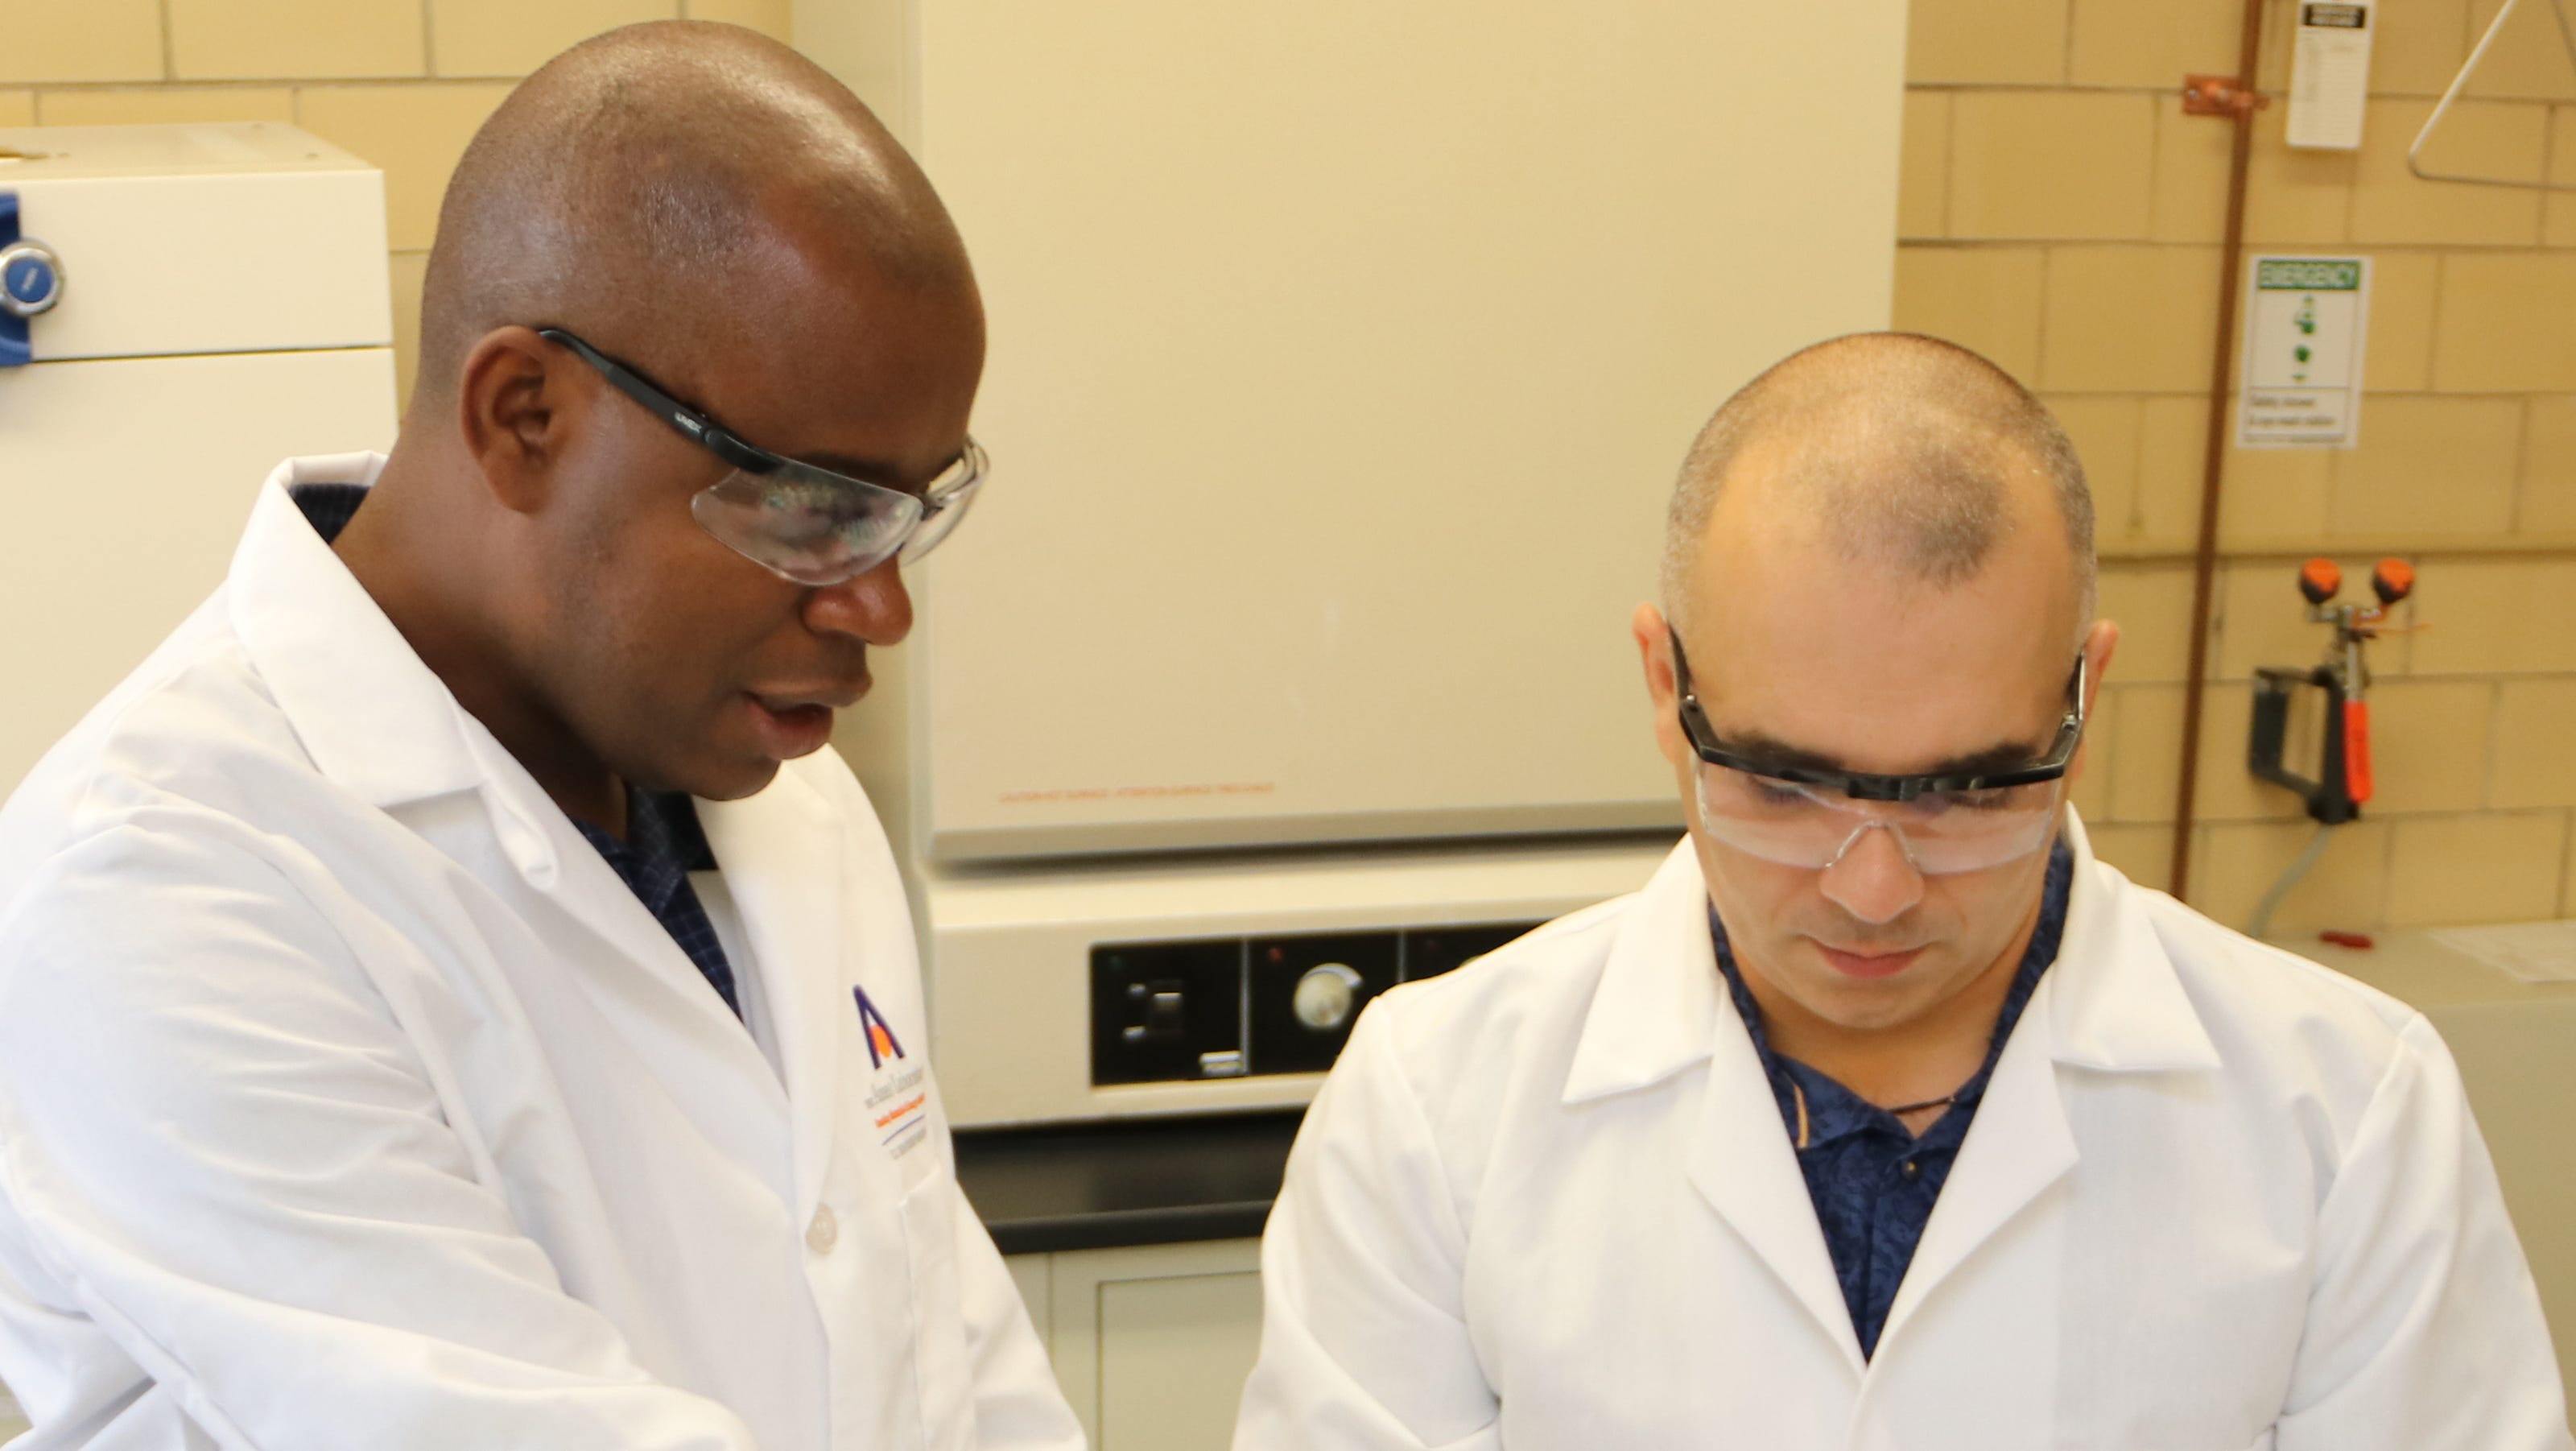 Work at U.S.'s Ames Lab is at the forefront of advancing secure supply chains and manufacturing